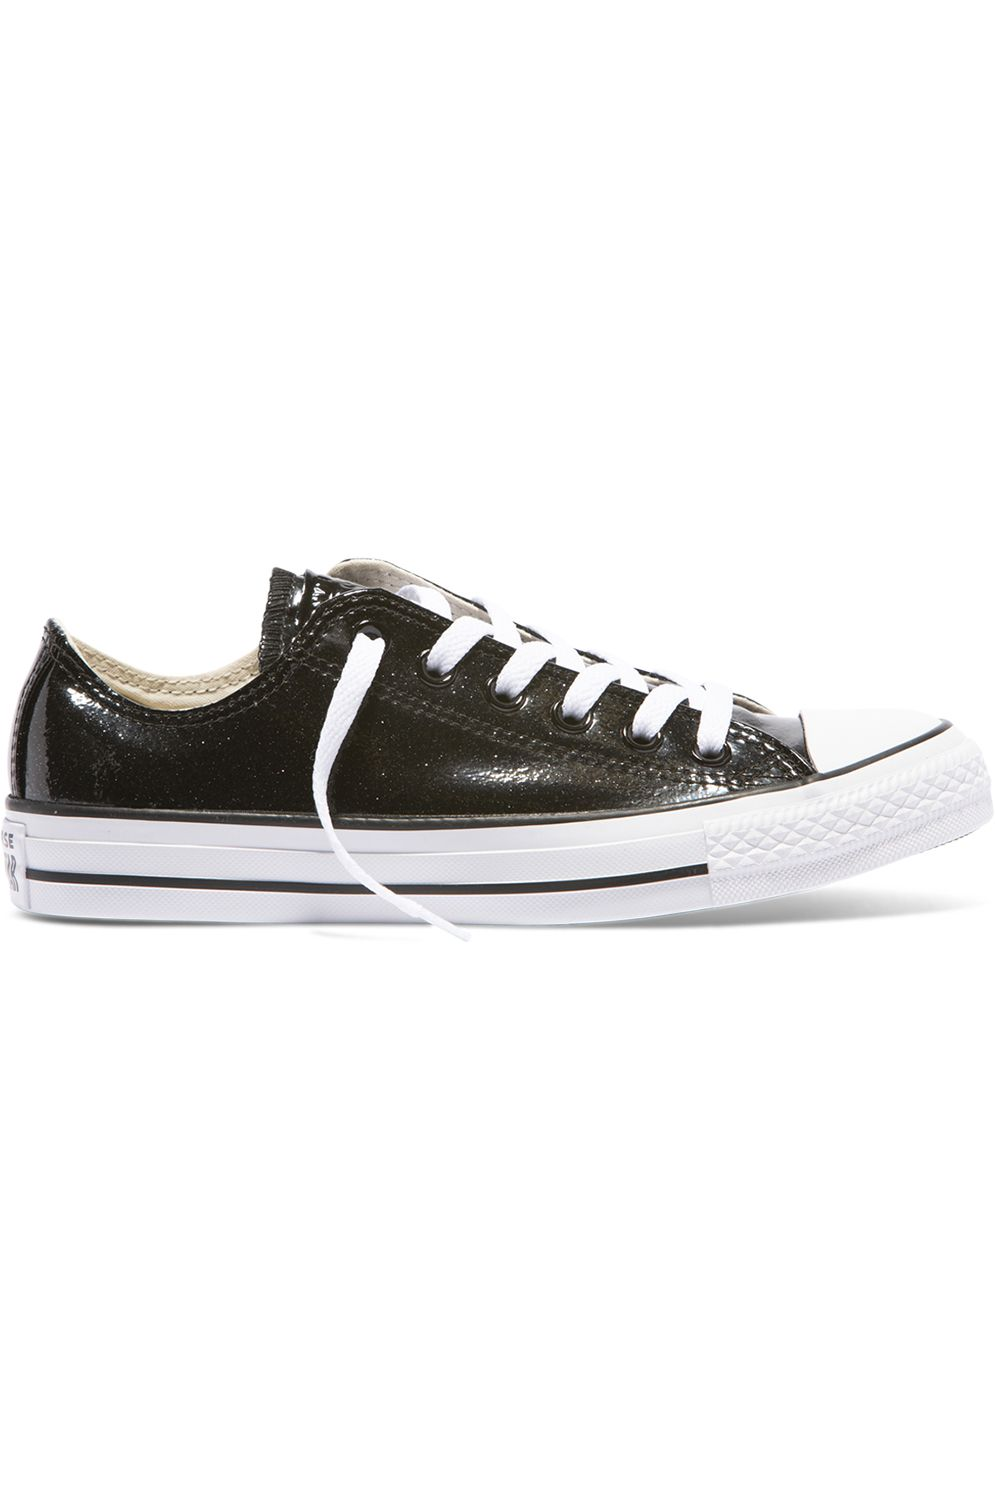 Tenis Converse CHUCK TAYLOR ALL STAR Black/Black/White